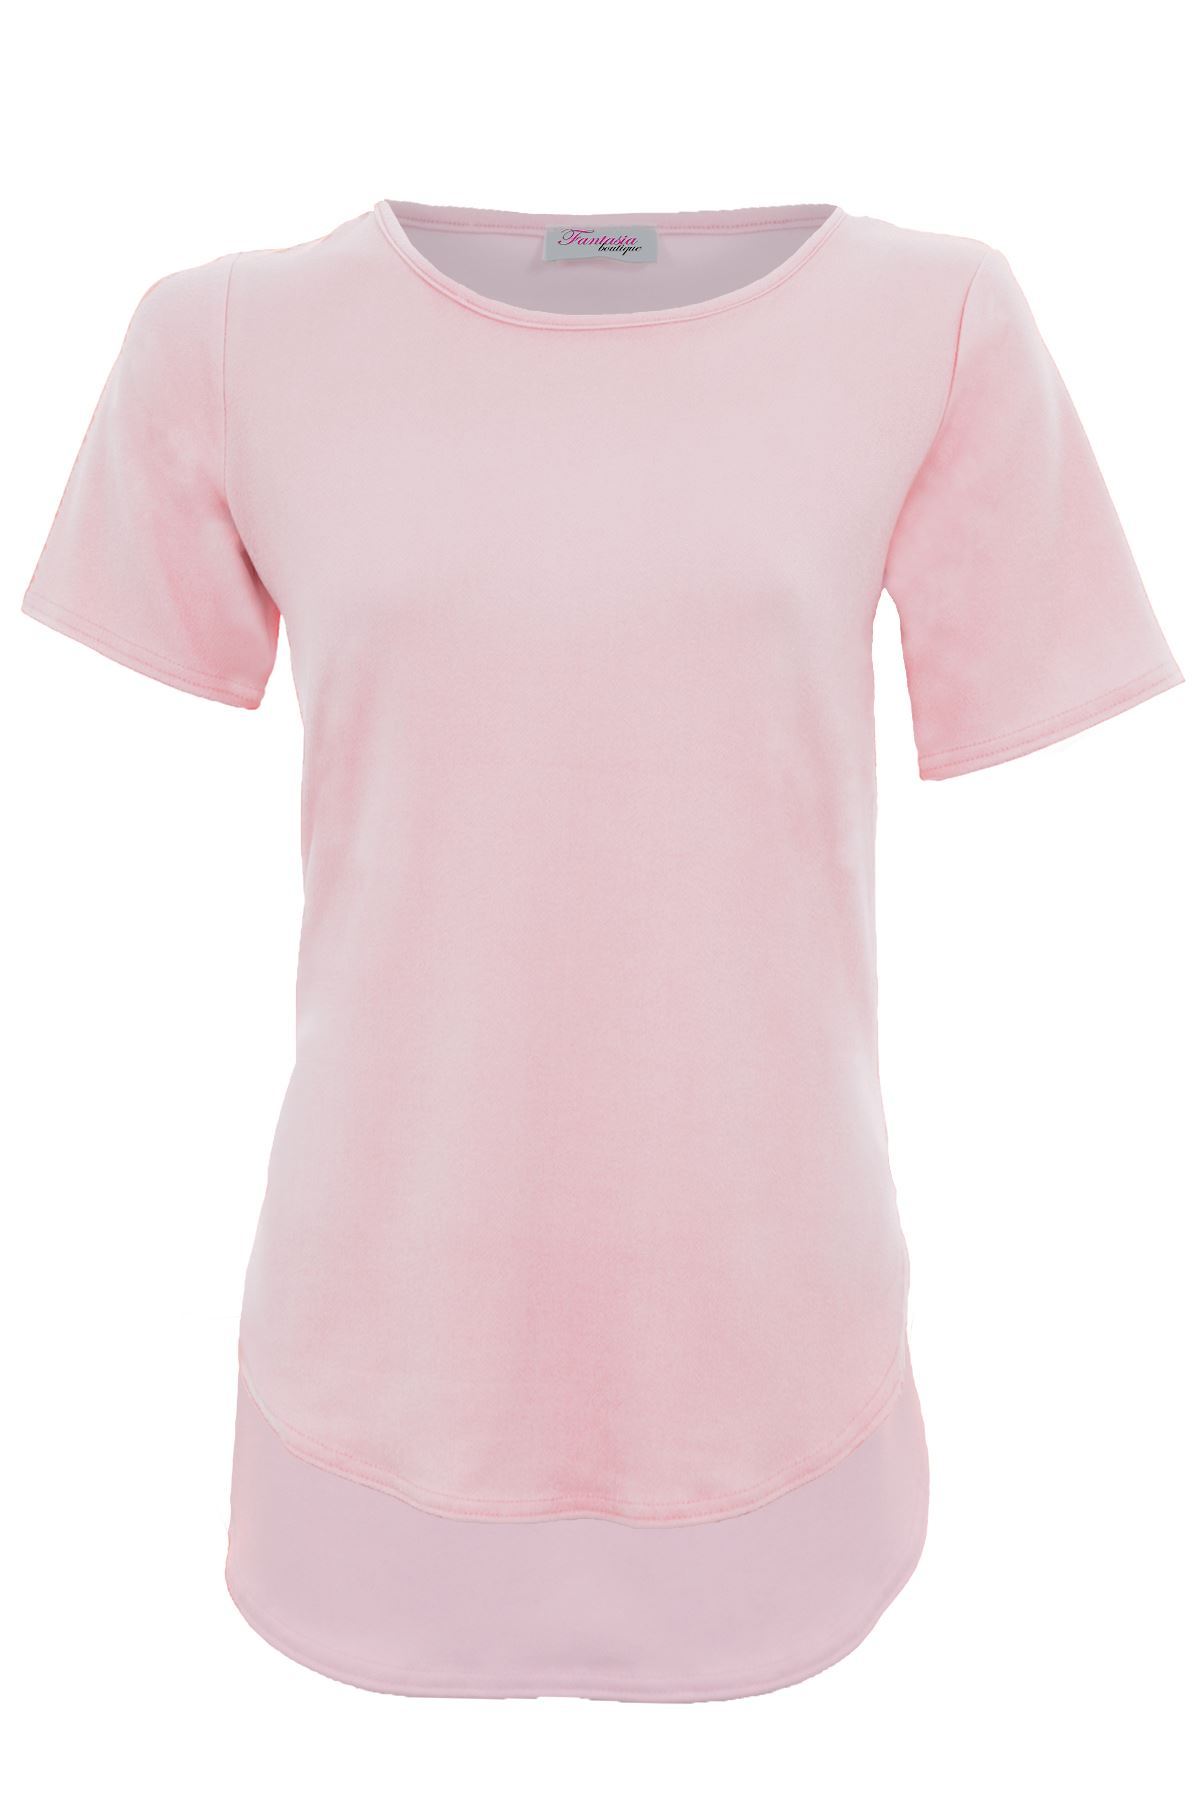 Ladies-Short-Sleeve-Crepe-Textured-Oversized-Women-039-s-High-Low-T-Shirt-Top thumbnail 12